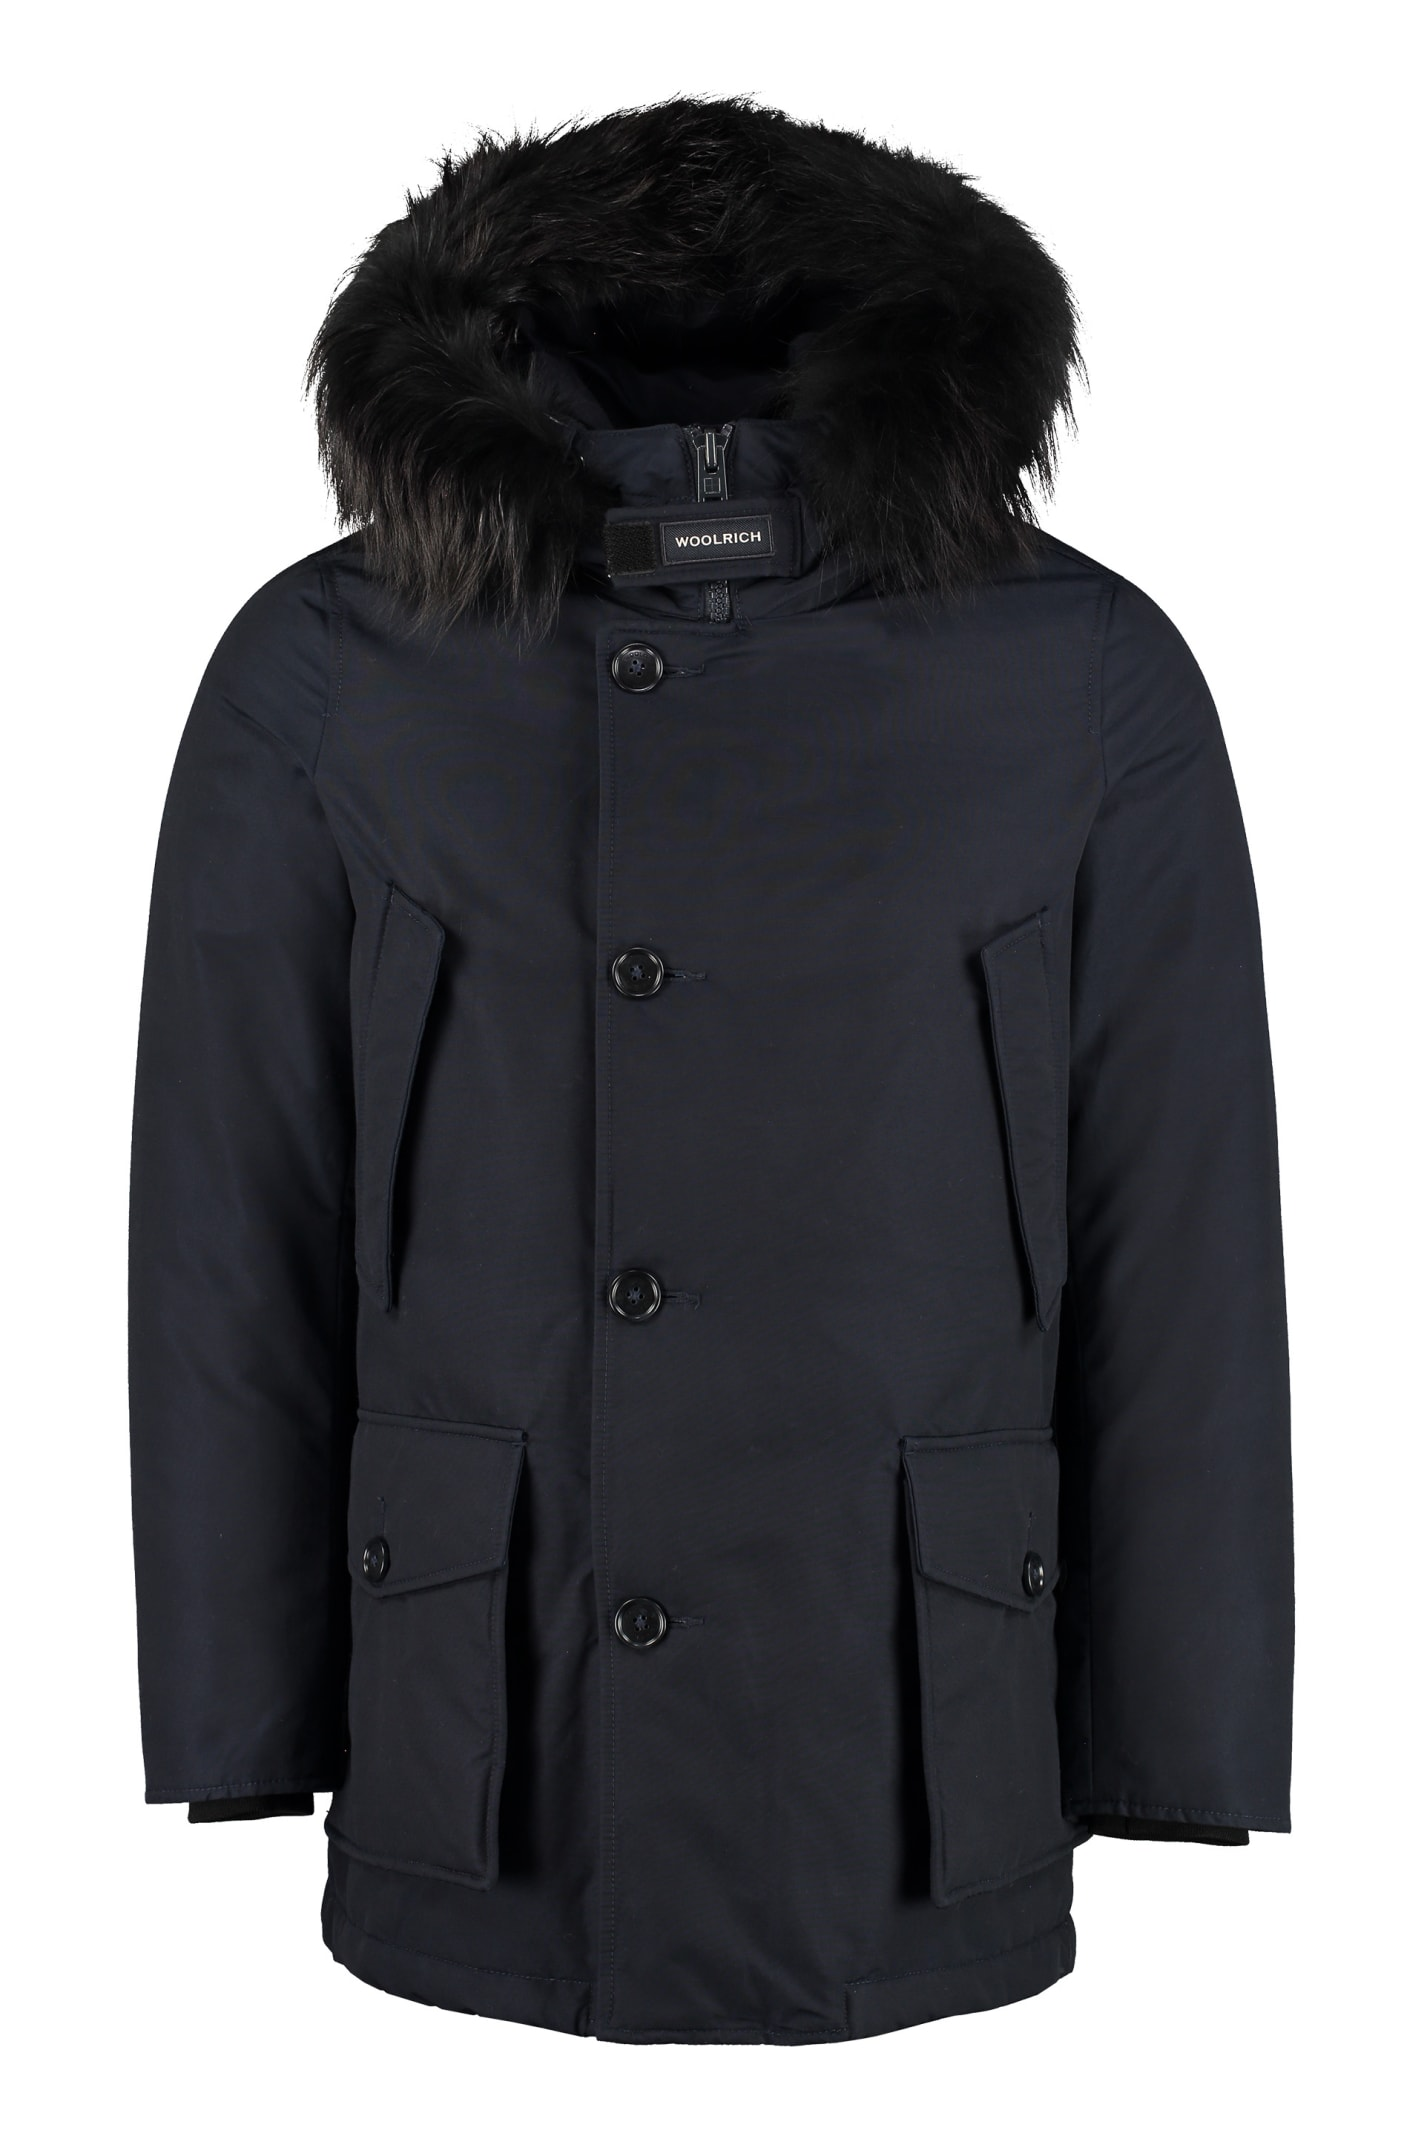 Woolrich Tops HOODED ARCTIC PARKA